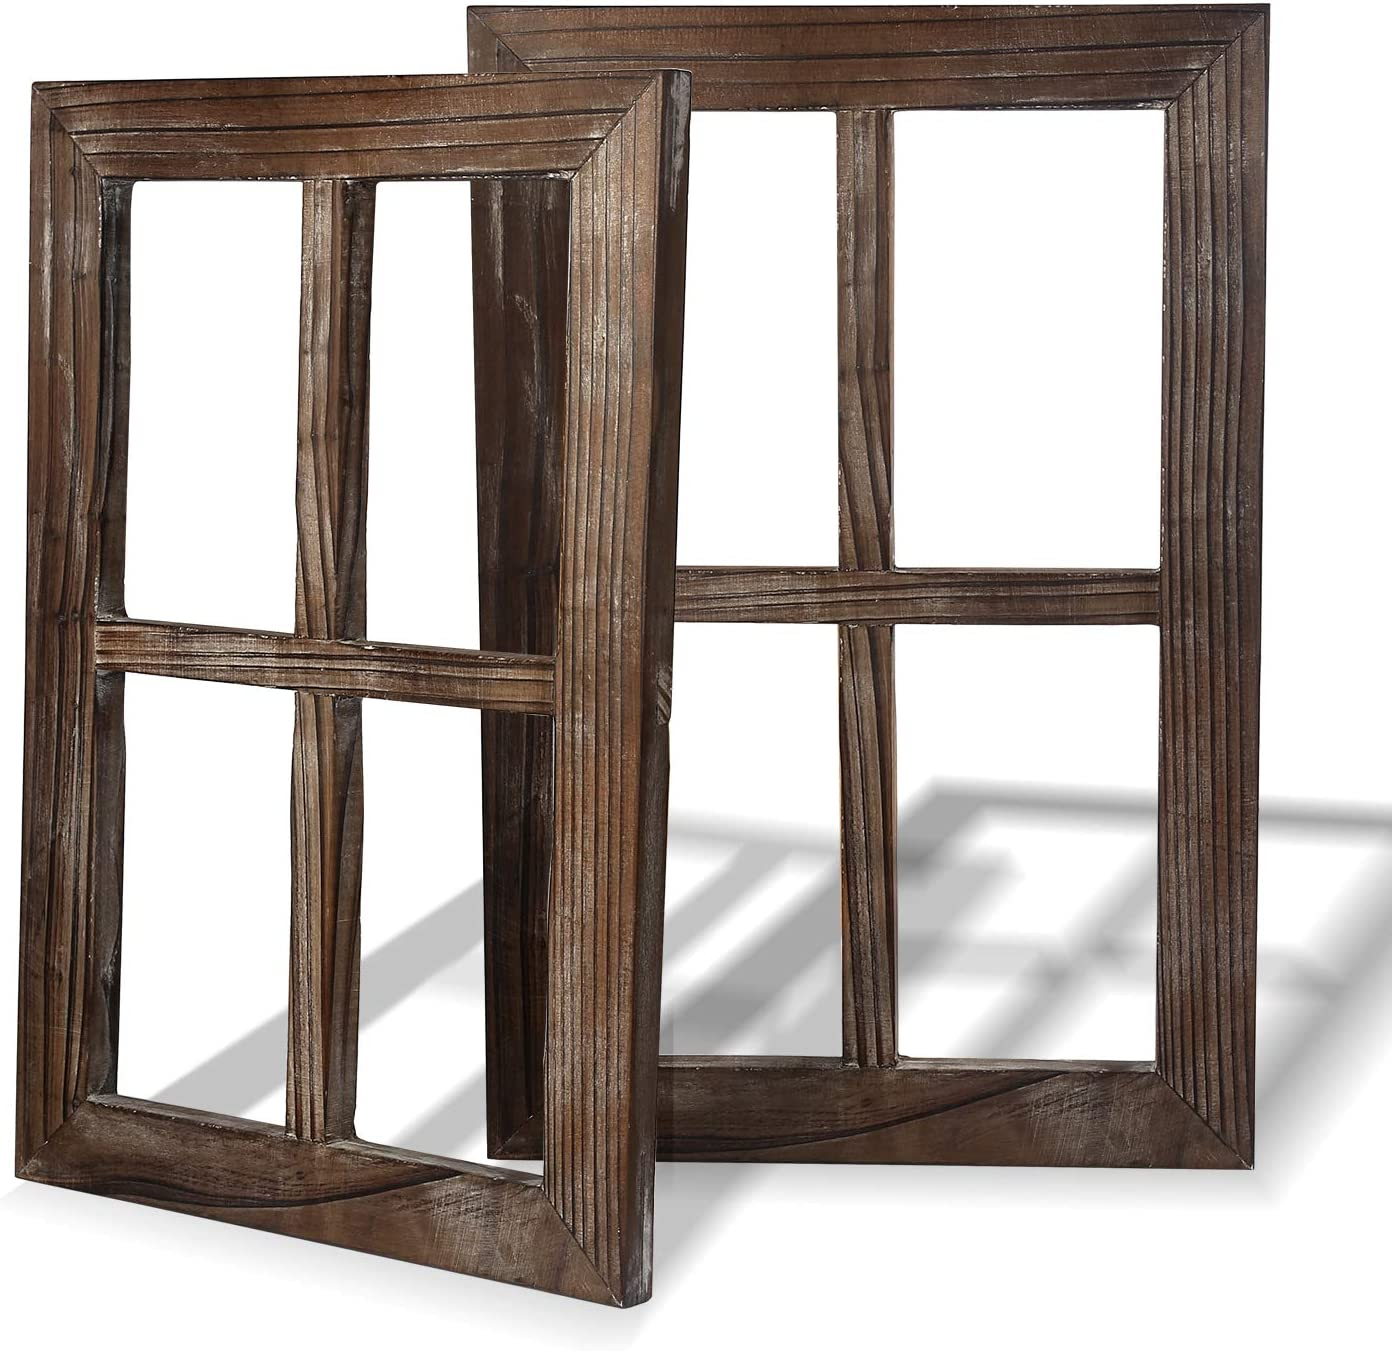 Amazon Com Rustic Wall Decor Home Decor Window Barnwood Frames Room Decor For Home Or Outdoor Not For Pictures Everything Else